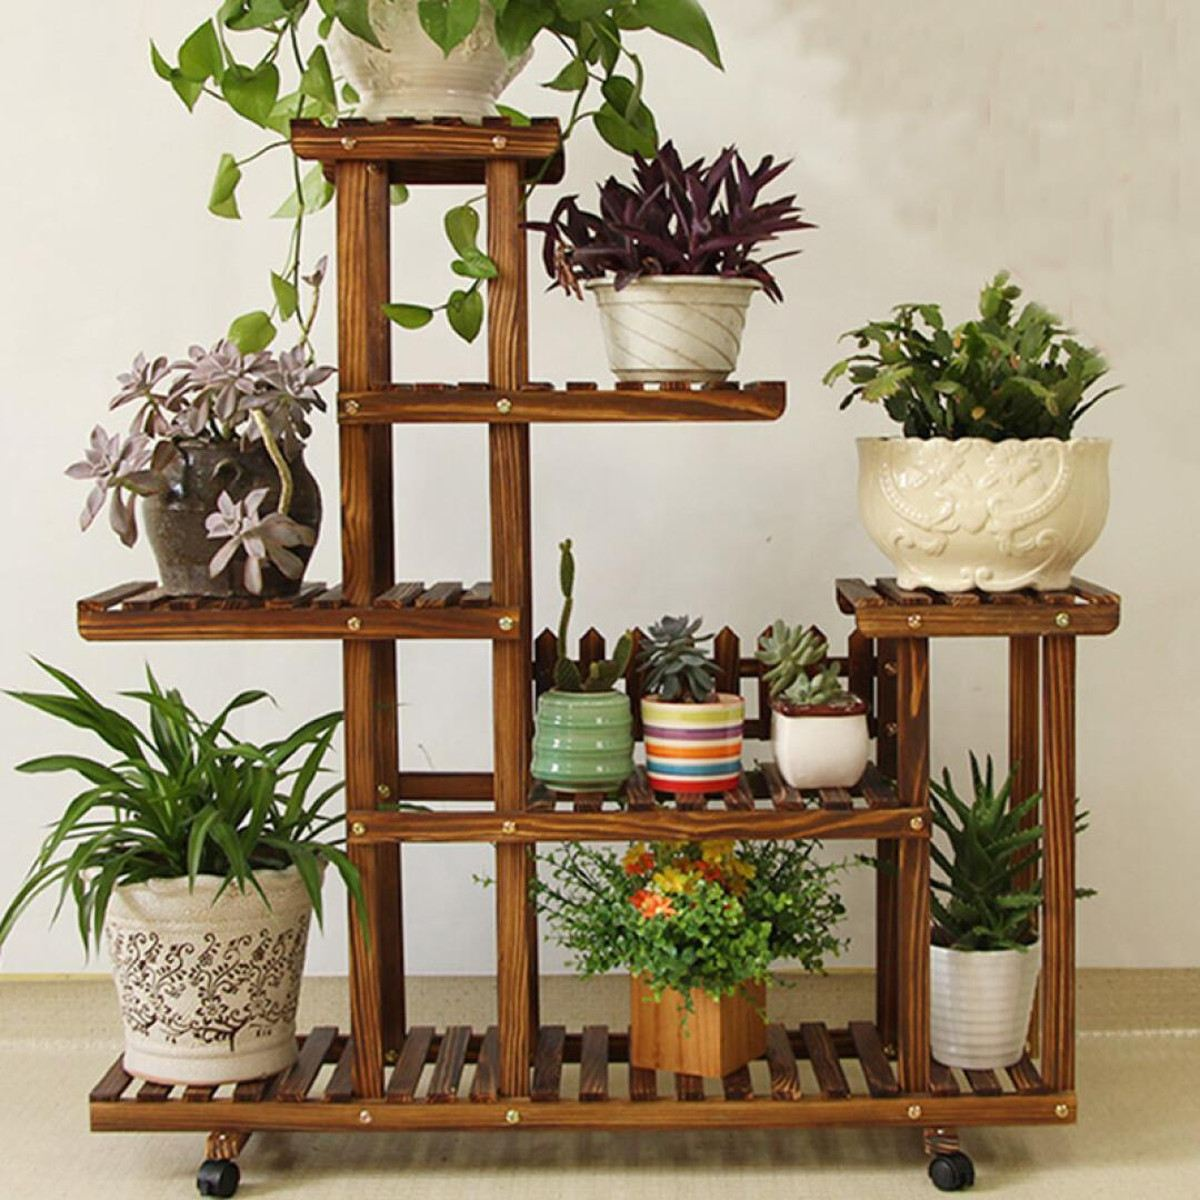 Bamboo Plant Flower Pot Stand Garden Planter Nursery Pot Stand Shelf Indoor Outdoor Garden Decoration Gifts Tools With Wheels